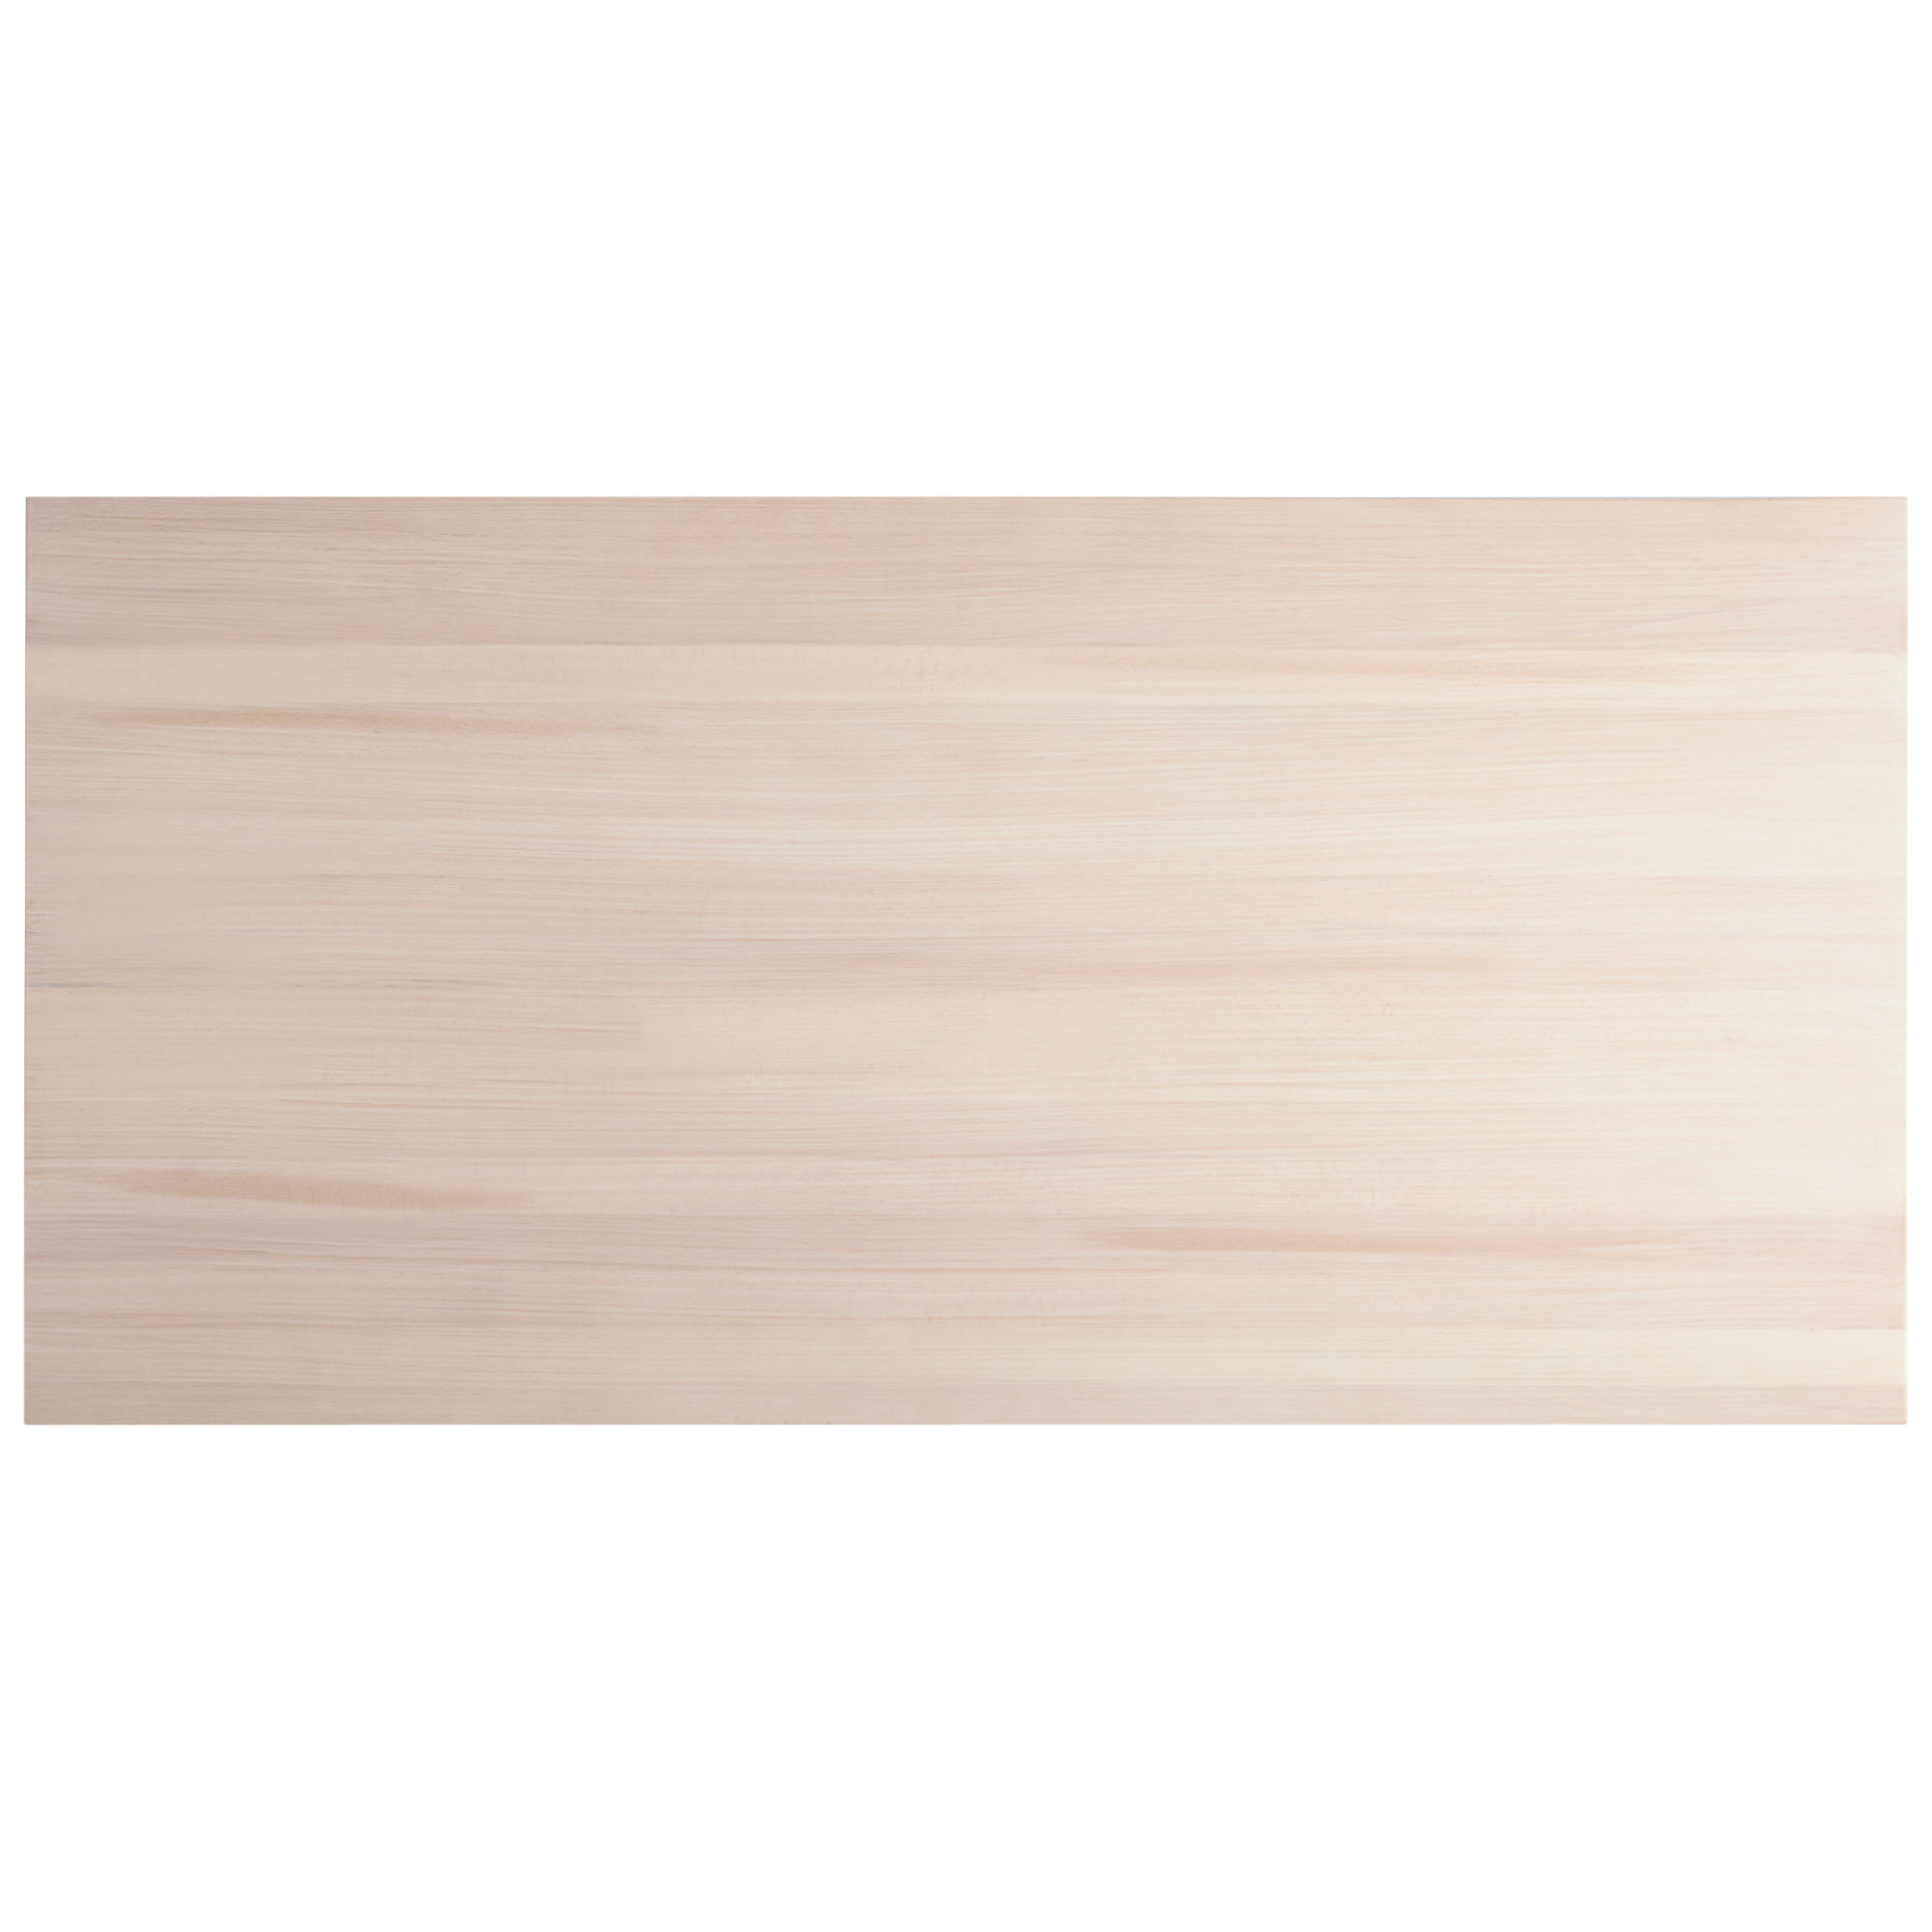 """#52 - 30"""" x 60"""" Solid Wood Live Edge Table Top with Antique White Wash Finish"""